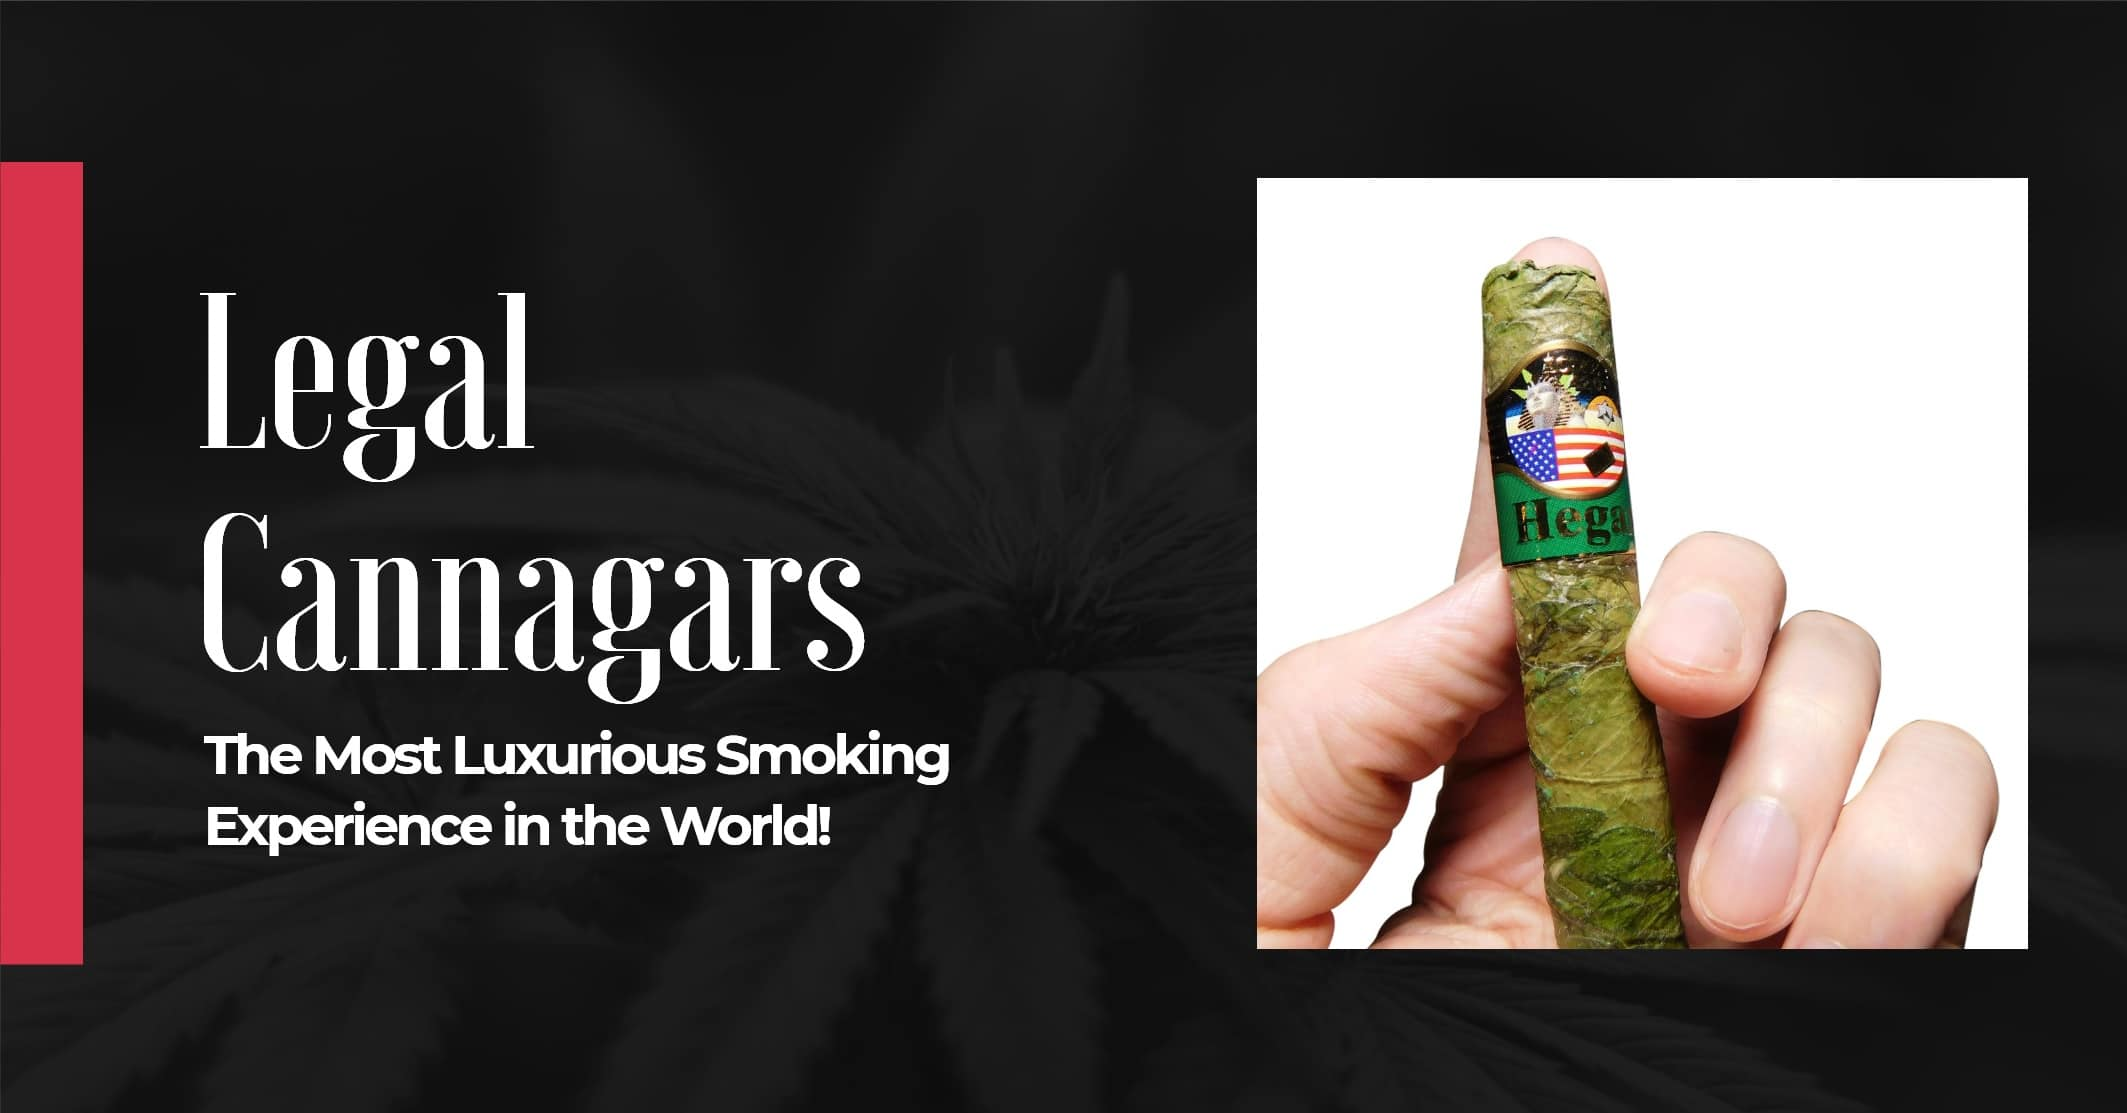 Now you can purchase legal cannagars online image